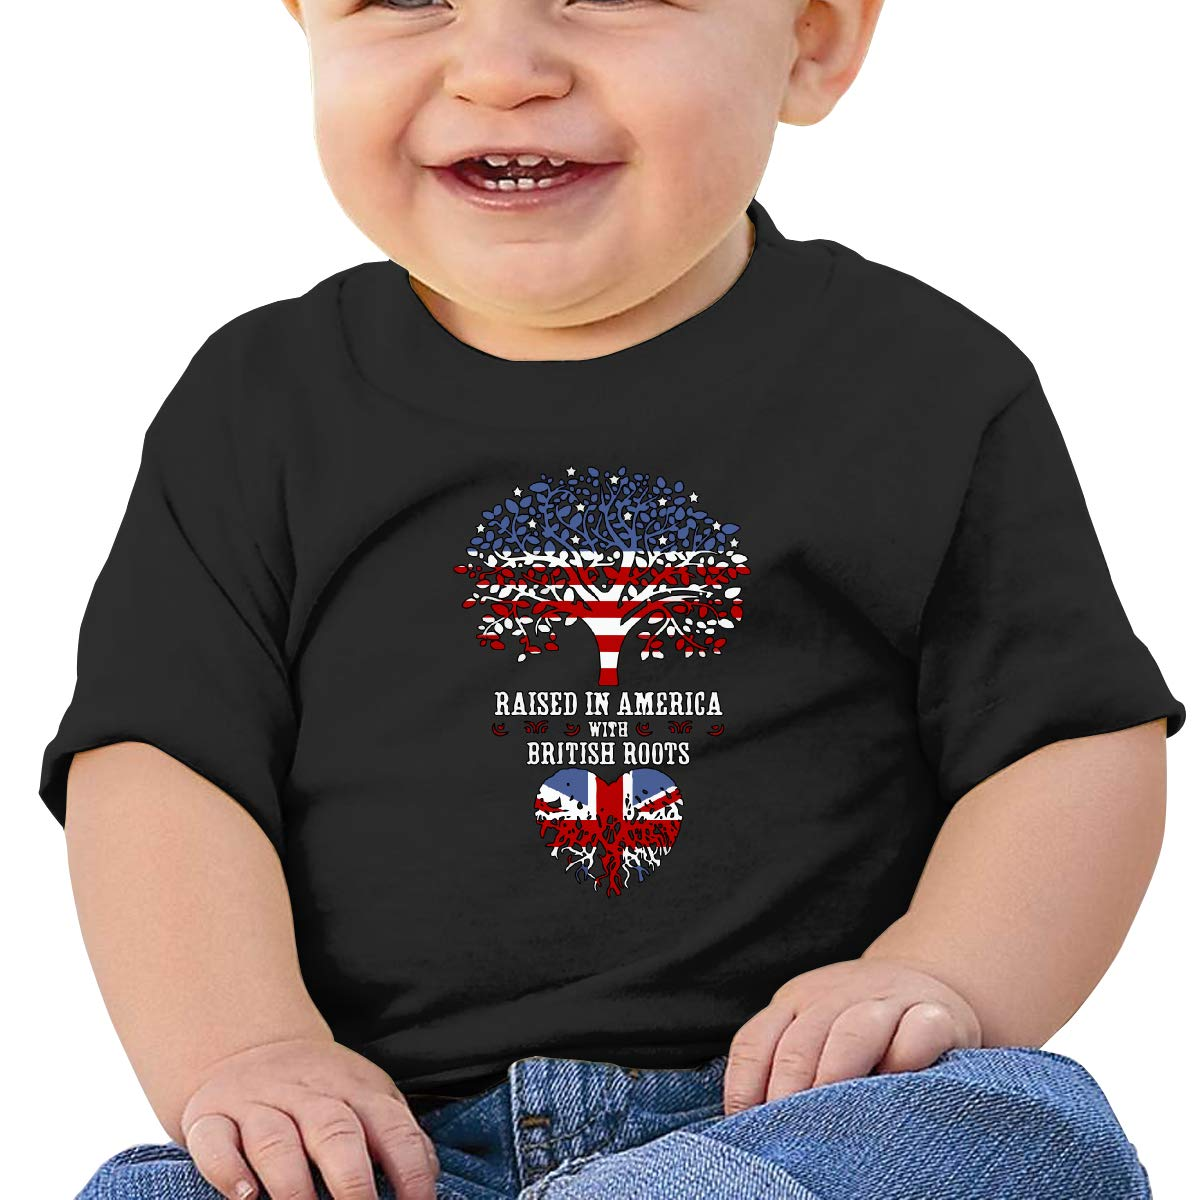 Raised in America with British Roots Baby Boys Girls Short Sleeve Crewneck T-Shirt 6-18 Month Tops